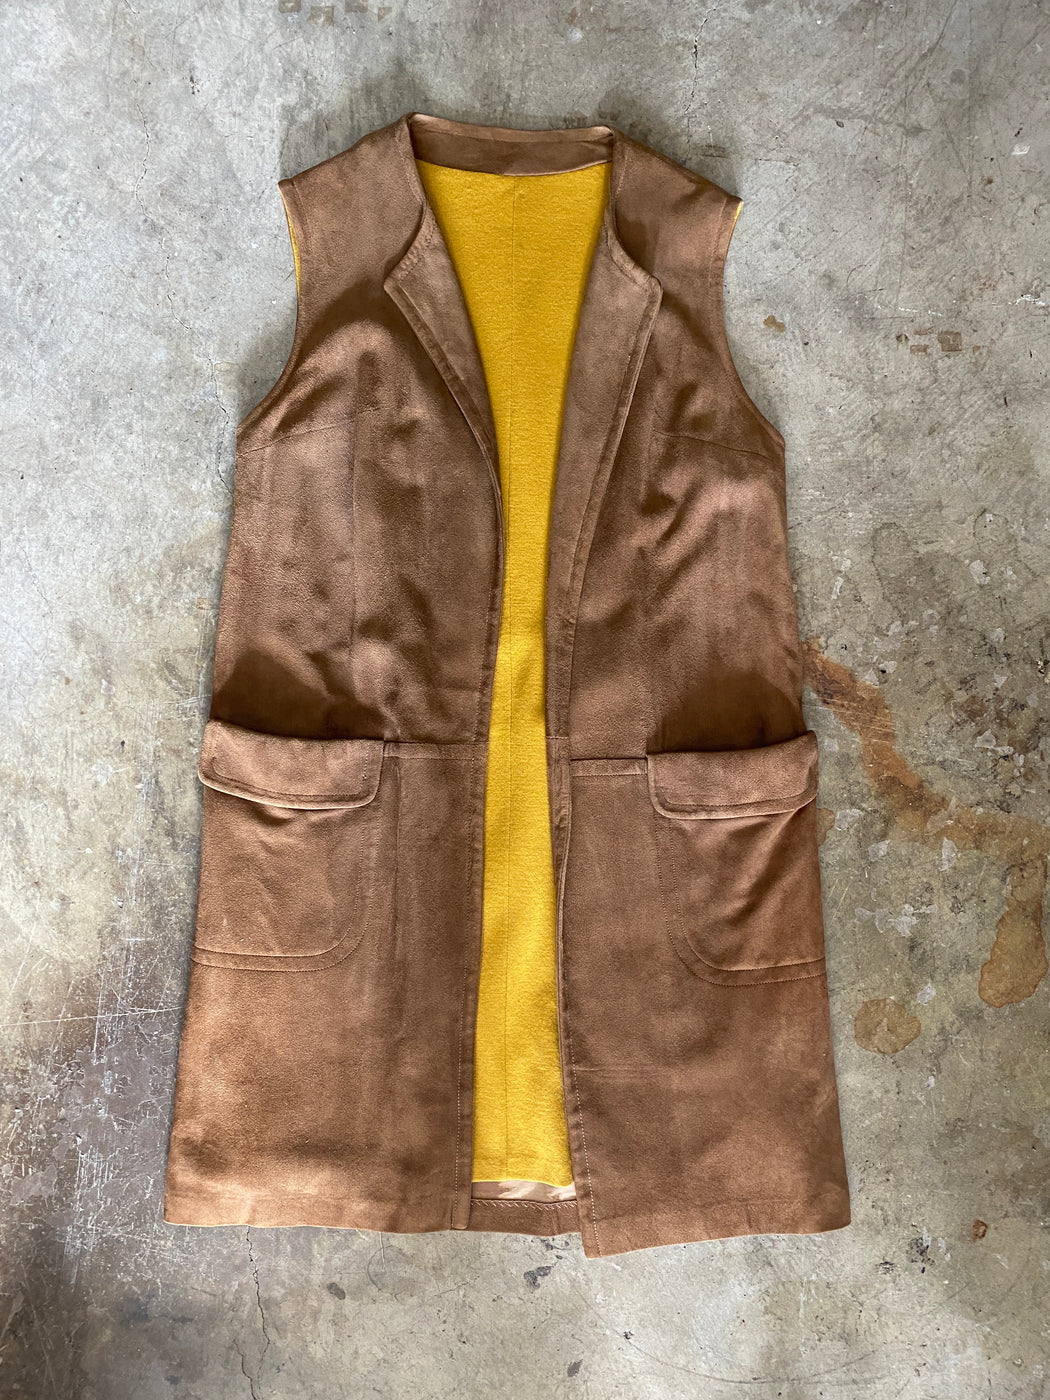 Brown Suede Vest With Yellow Lining